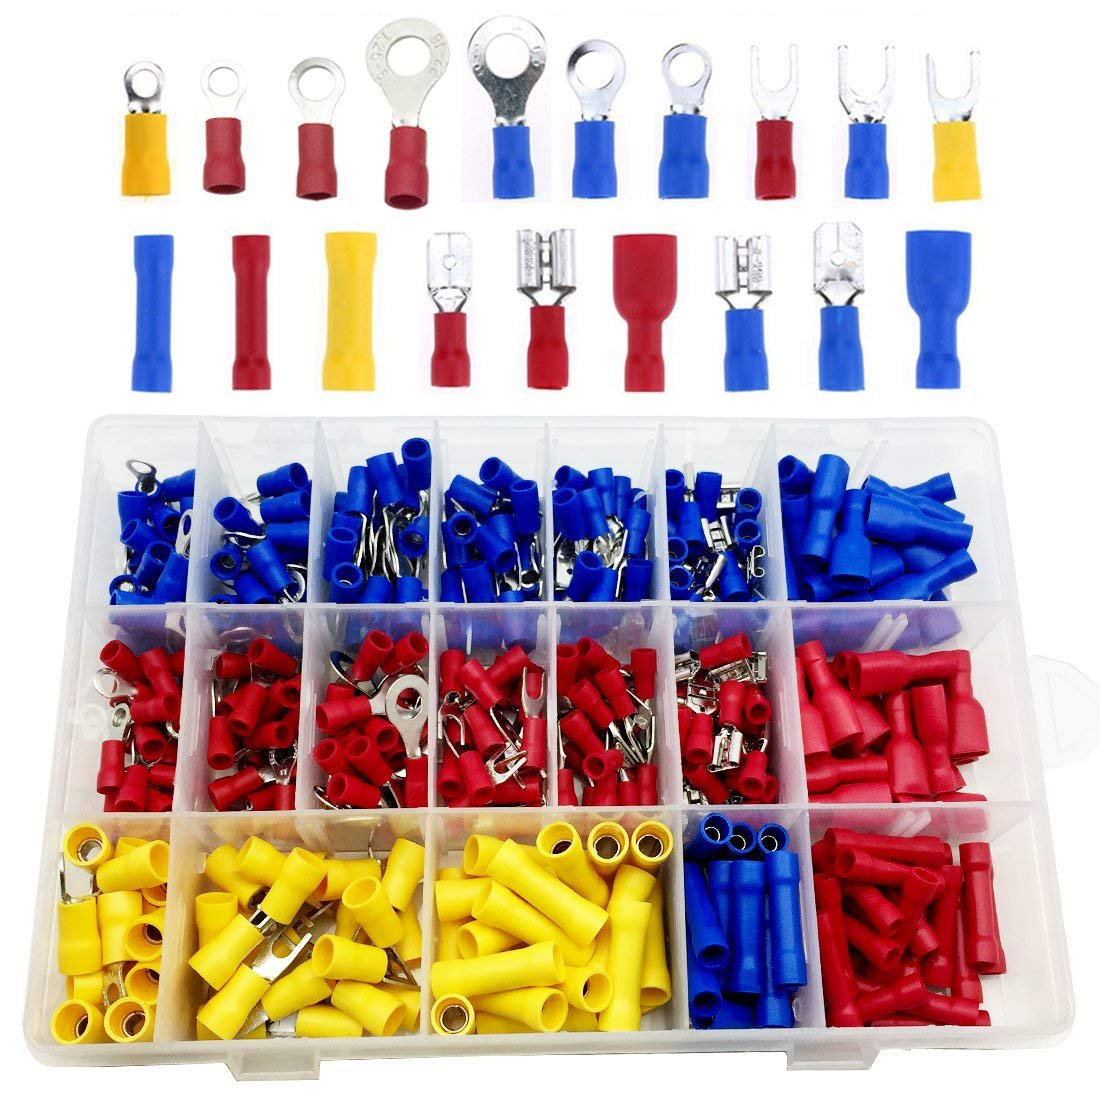 CR150514E130 22-16 | 16-14 | 12-10 Gauge Male Spade Fork Ring Solderless Crimp Connectors Terminals Assortment Kit CO RODE 380Pcs Quick Disconnect Electrical Insulated Butt Female